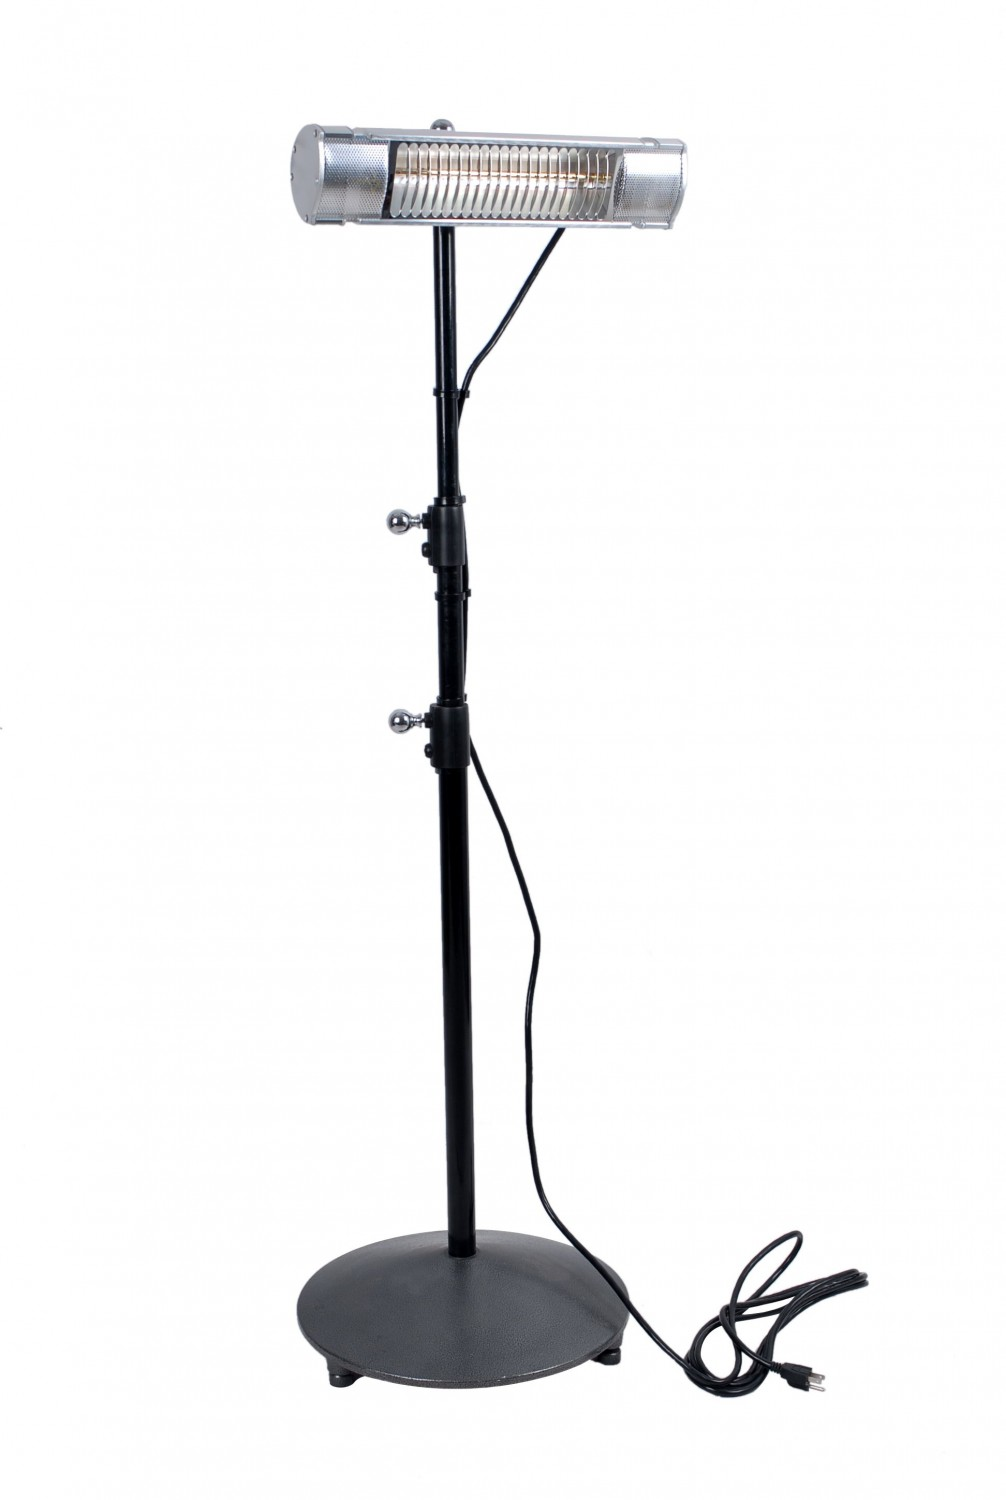 Crown Verity CV-EH-STAND-3 Infrared Heater Stand